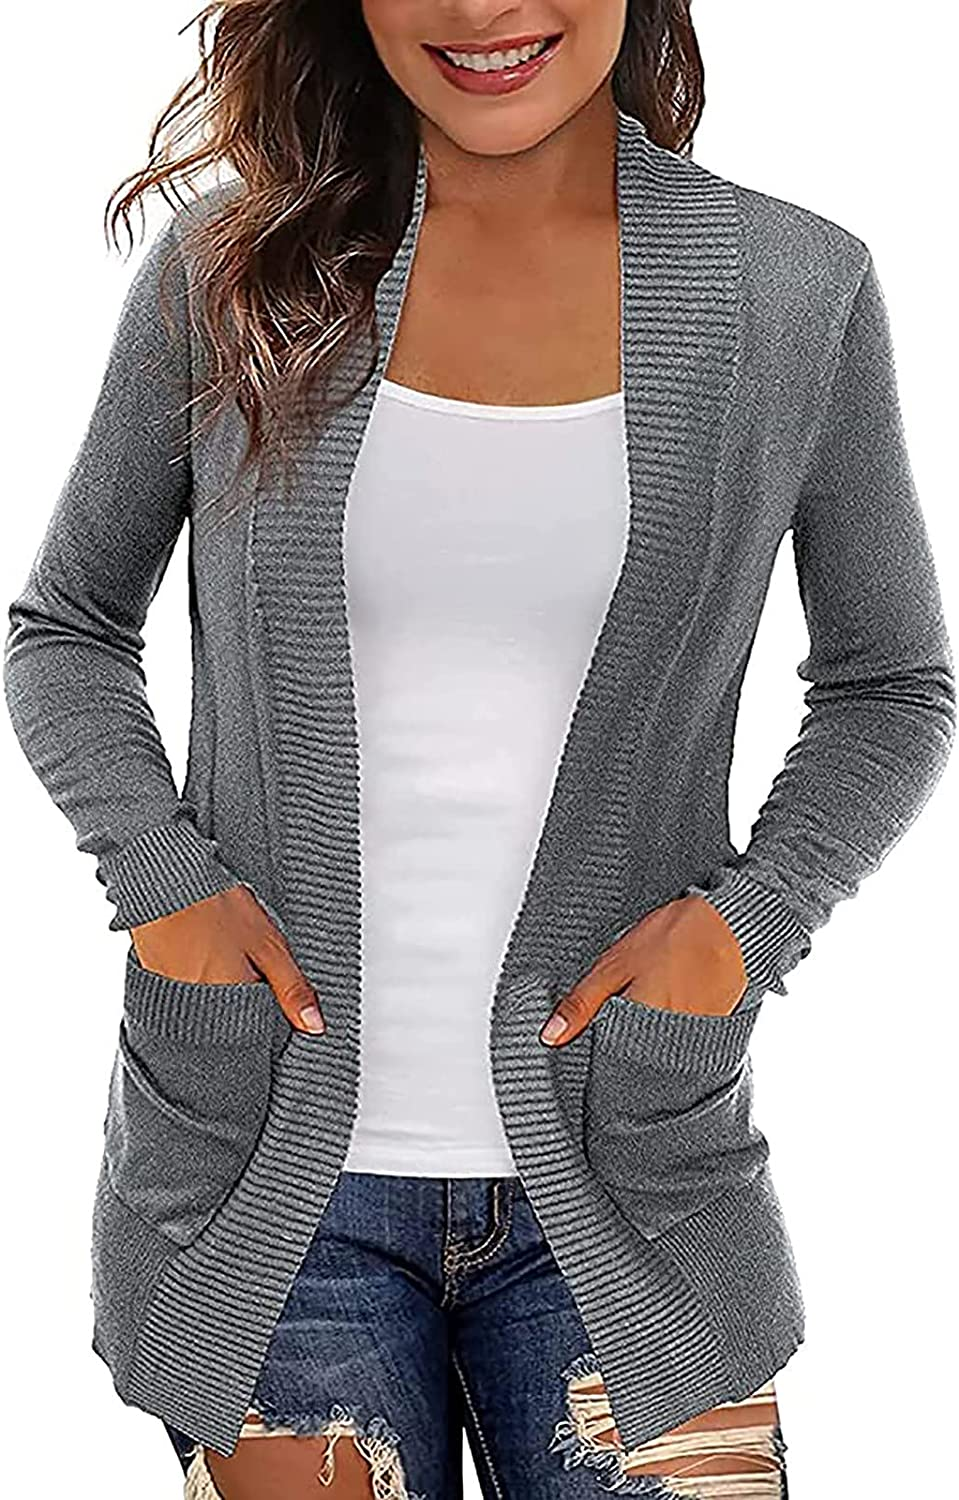 Kanzd Cardigan Sweaters for Women So Fashion Long Overseas parallel outlet import regular item Sleeve Knitted